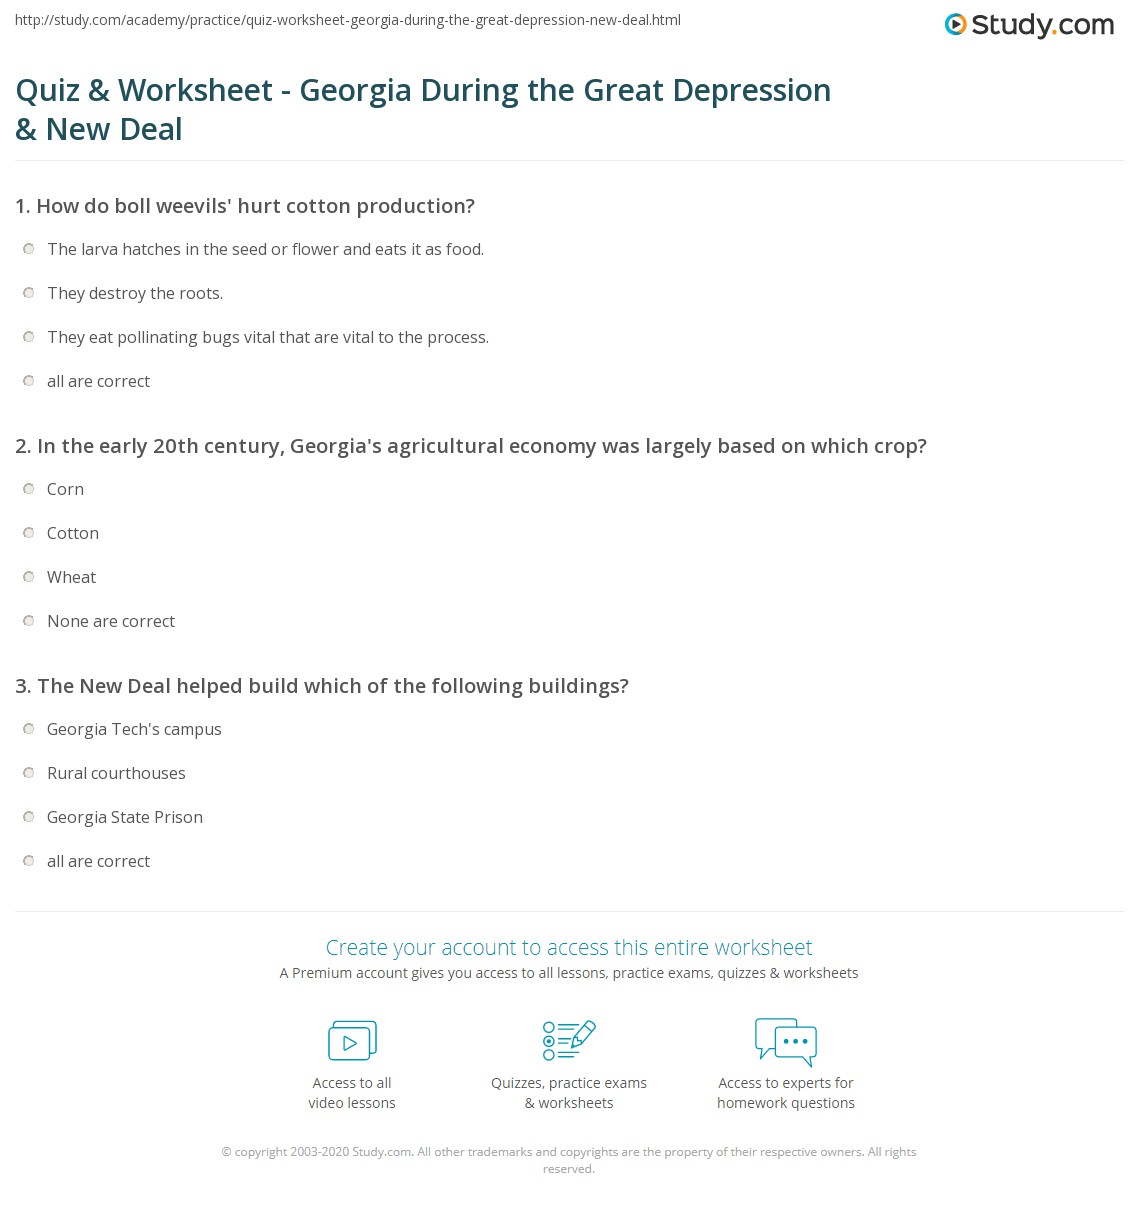 worksheet Child Support Worksheet Georgia quiz worksheet georgia during the great depression new deal print how impacted worksheet